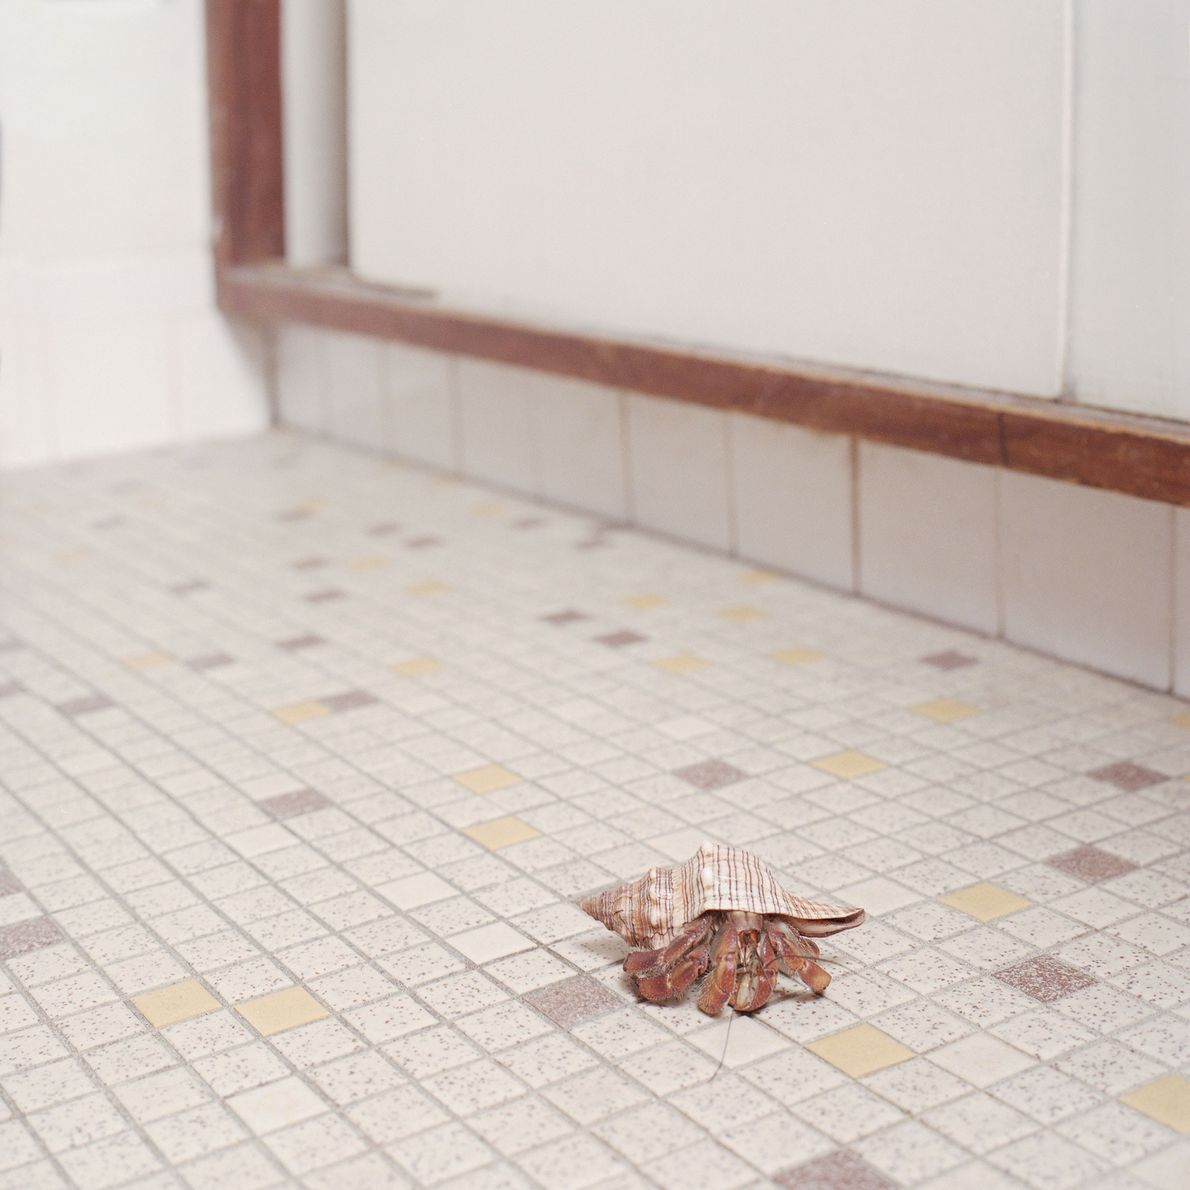 An unnamed hermit crab makes its way across a tile floor. The crustaceans can live up ...